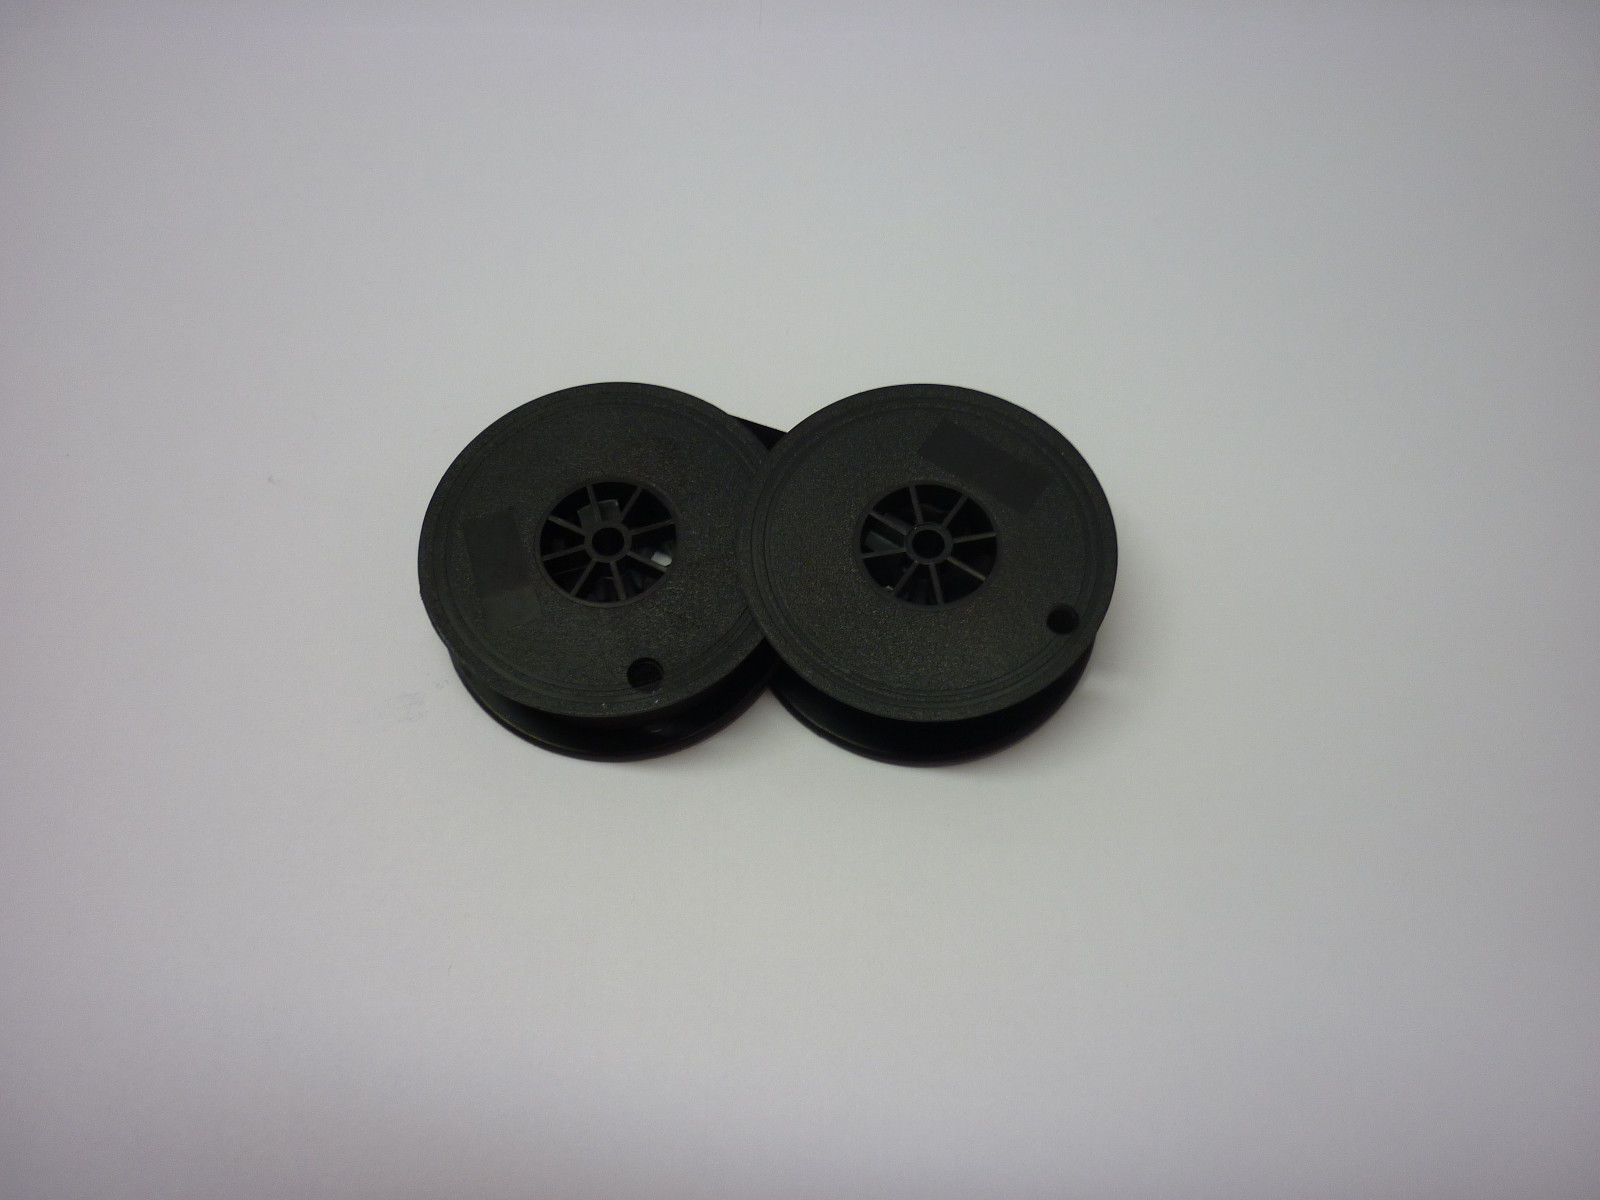 Underwood 565 565 CR Typewriter Ribbon Black Twin Spool